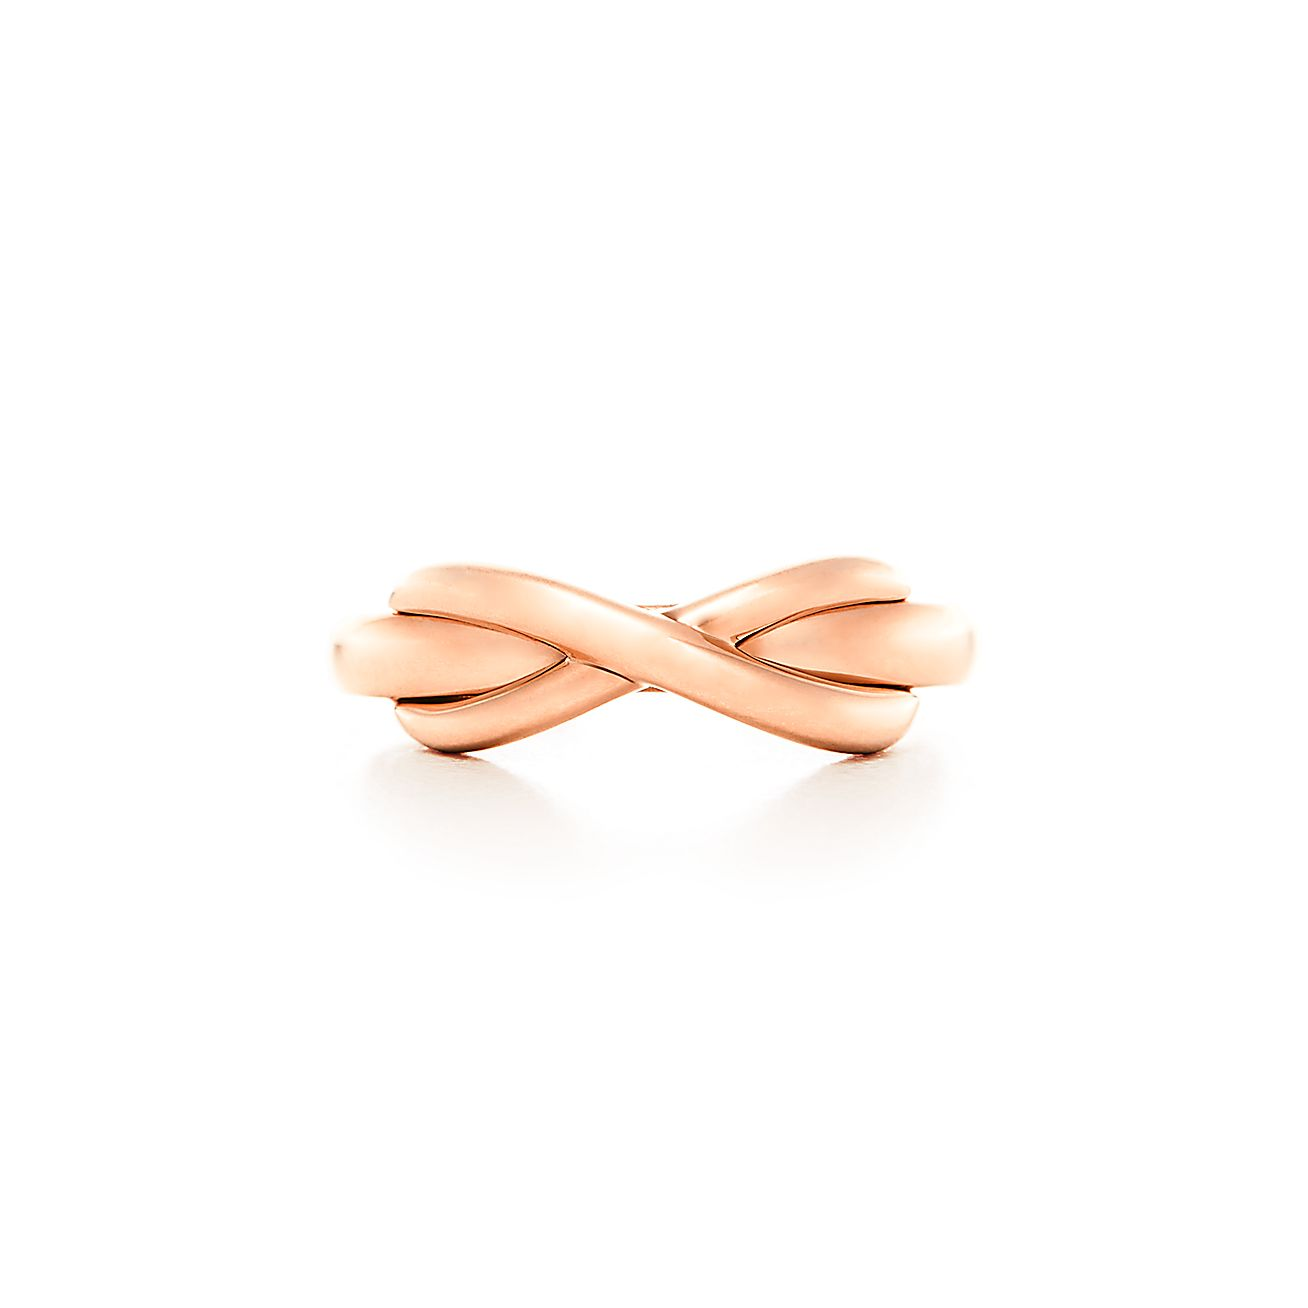 This is on my Wish List: Tiffany Infinity ring in 18k rose gold. | Tiffany & Co.